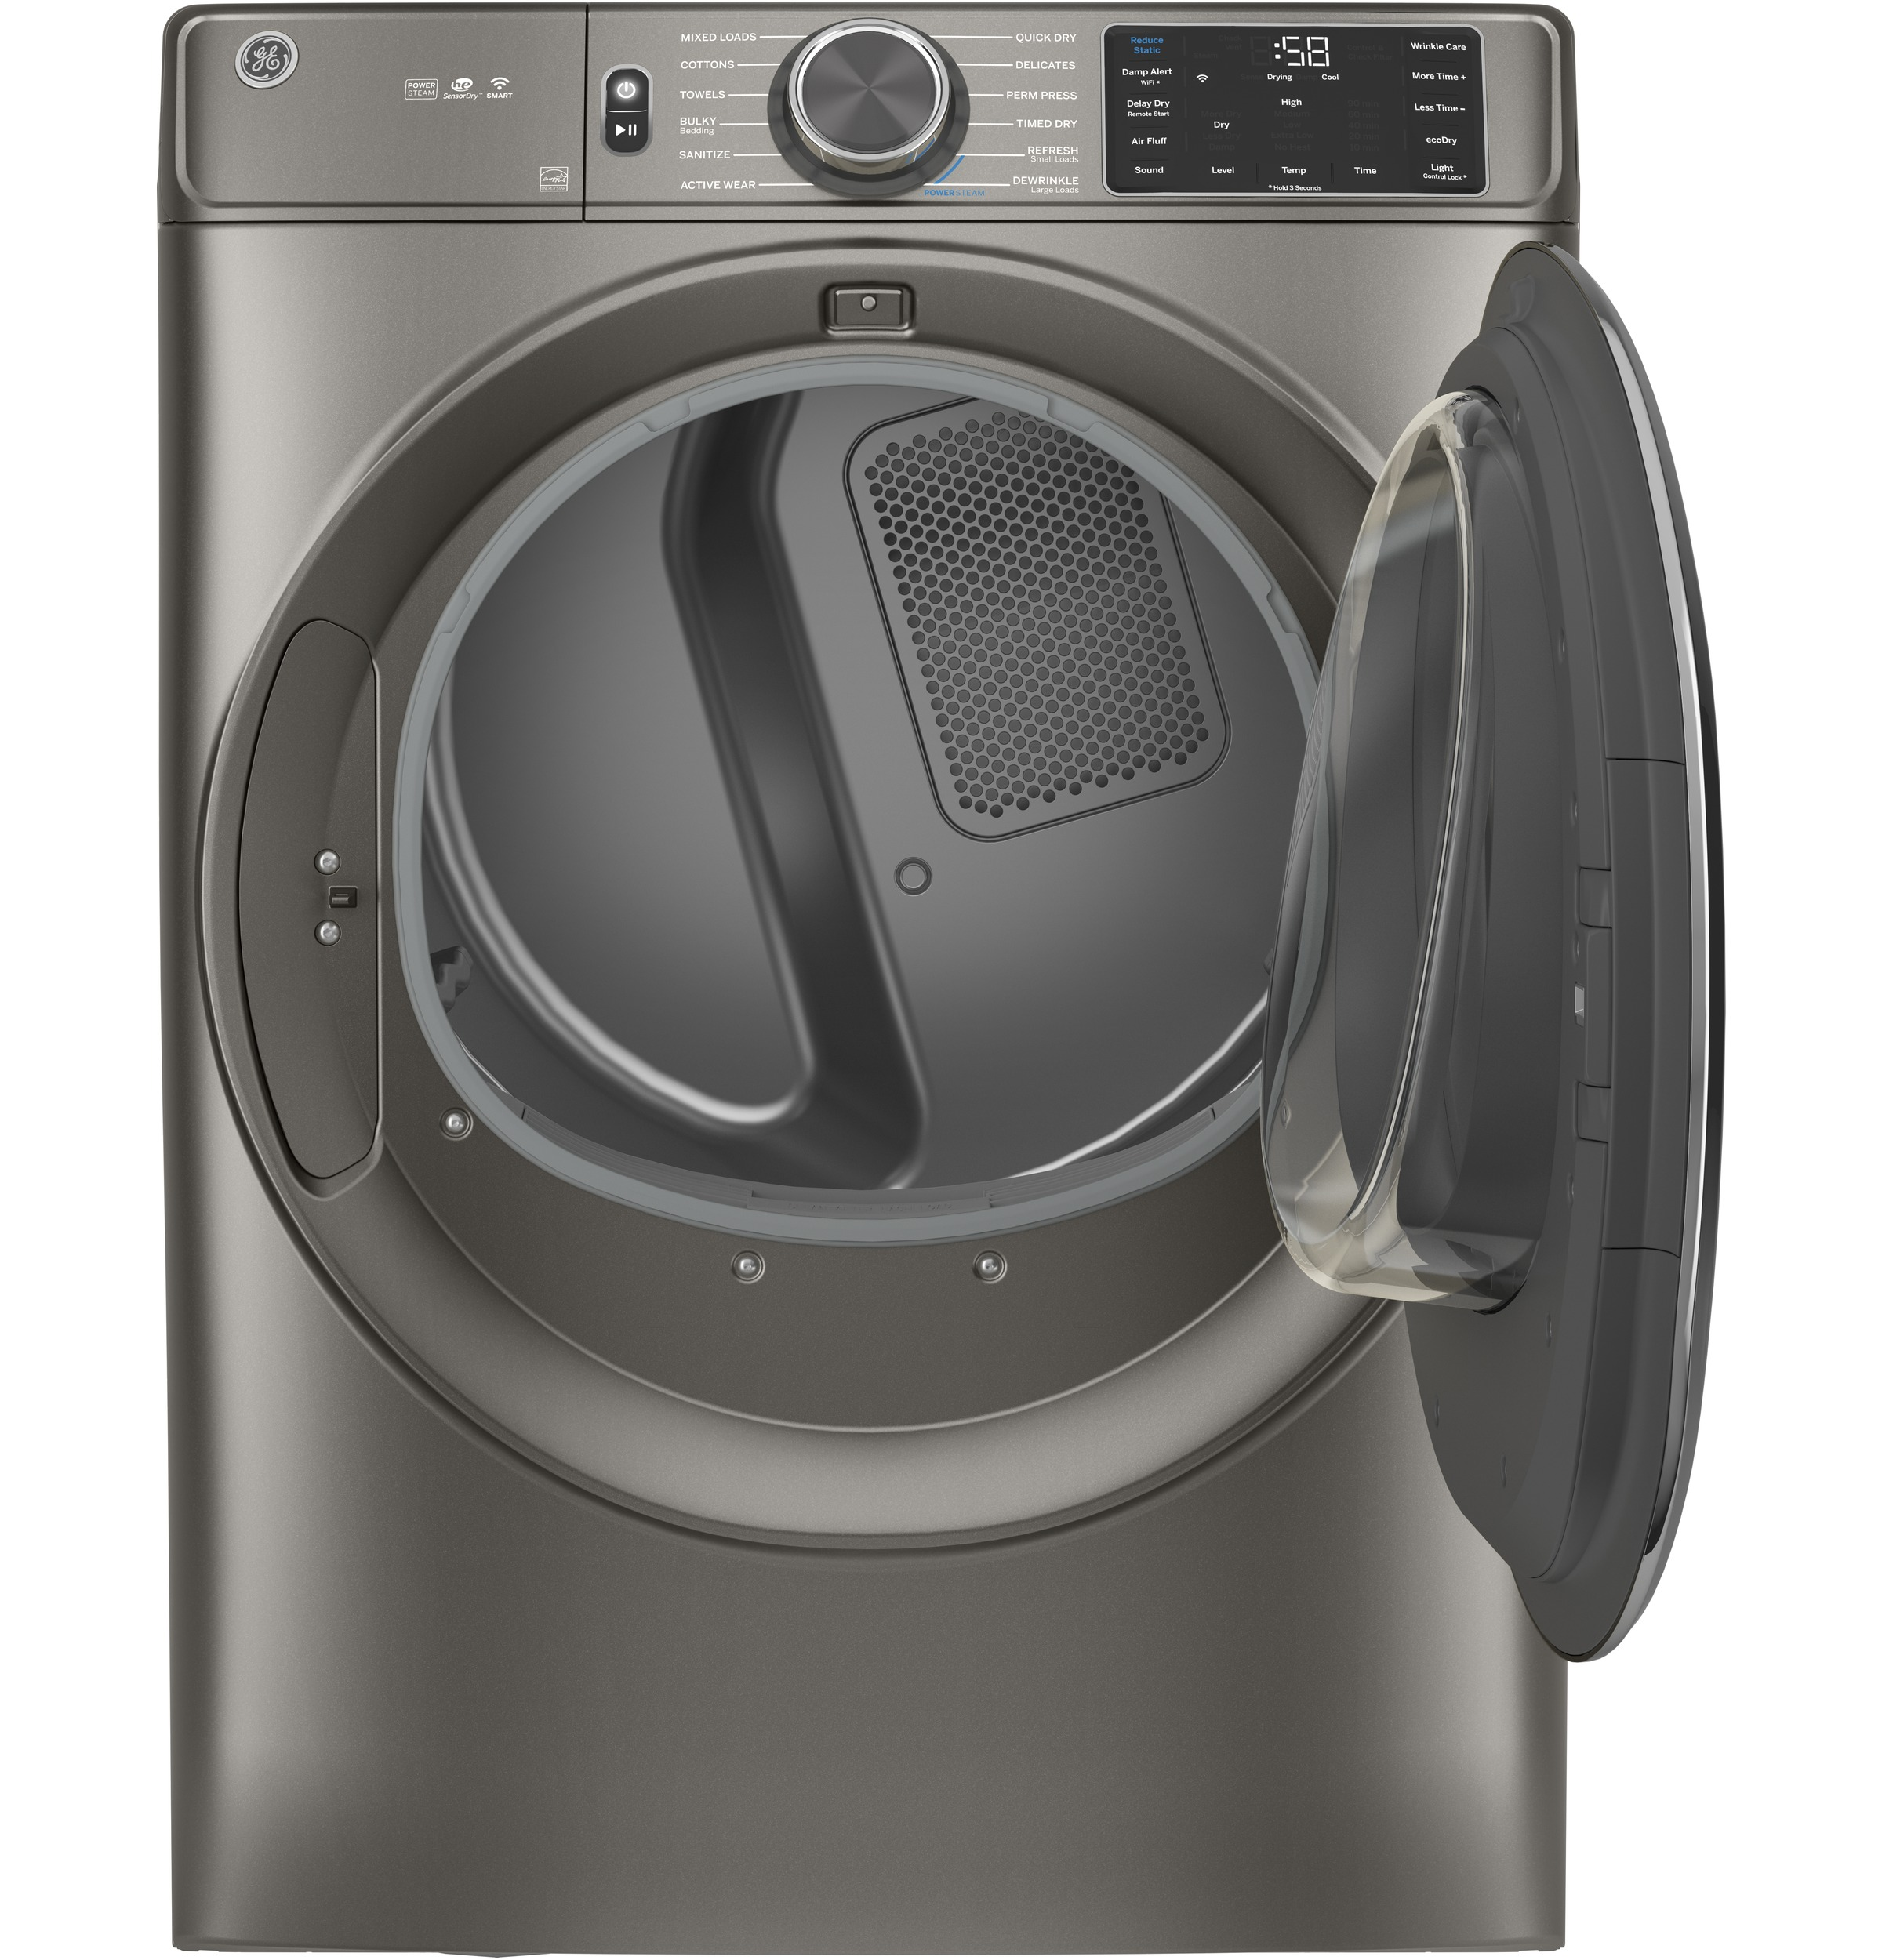 Model: GFD65GSPNSN | GE GE® 7.8 cu. ft. Capacity Smart Front Load Gas Dryer with Steam and Sanitize Cycle